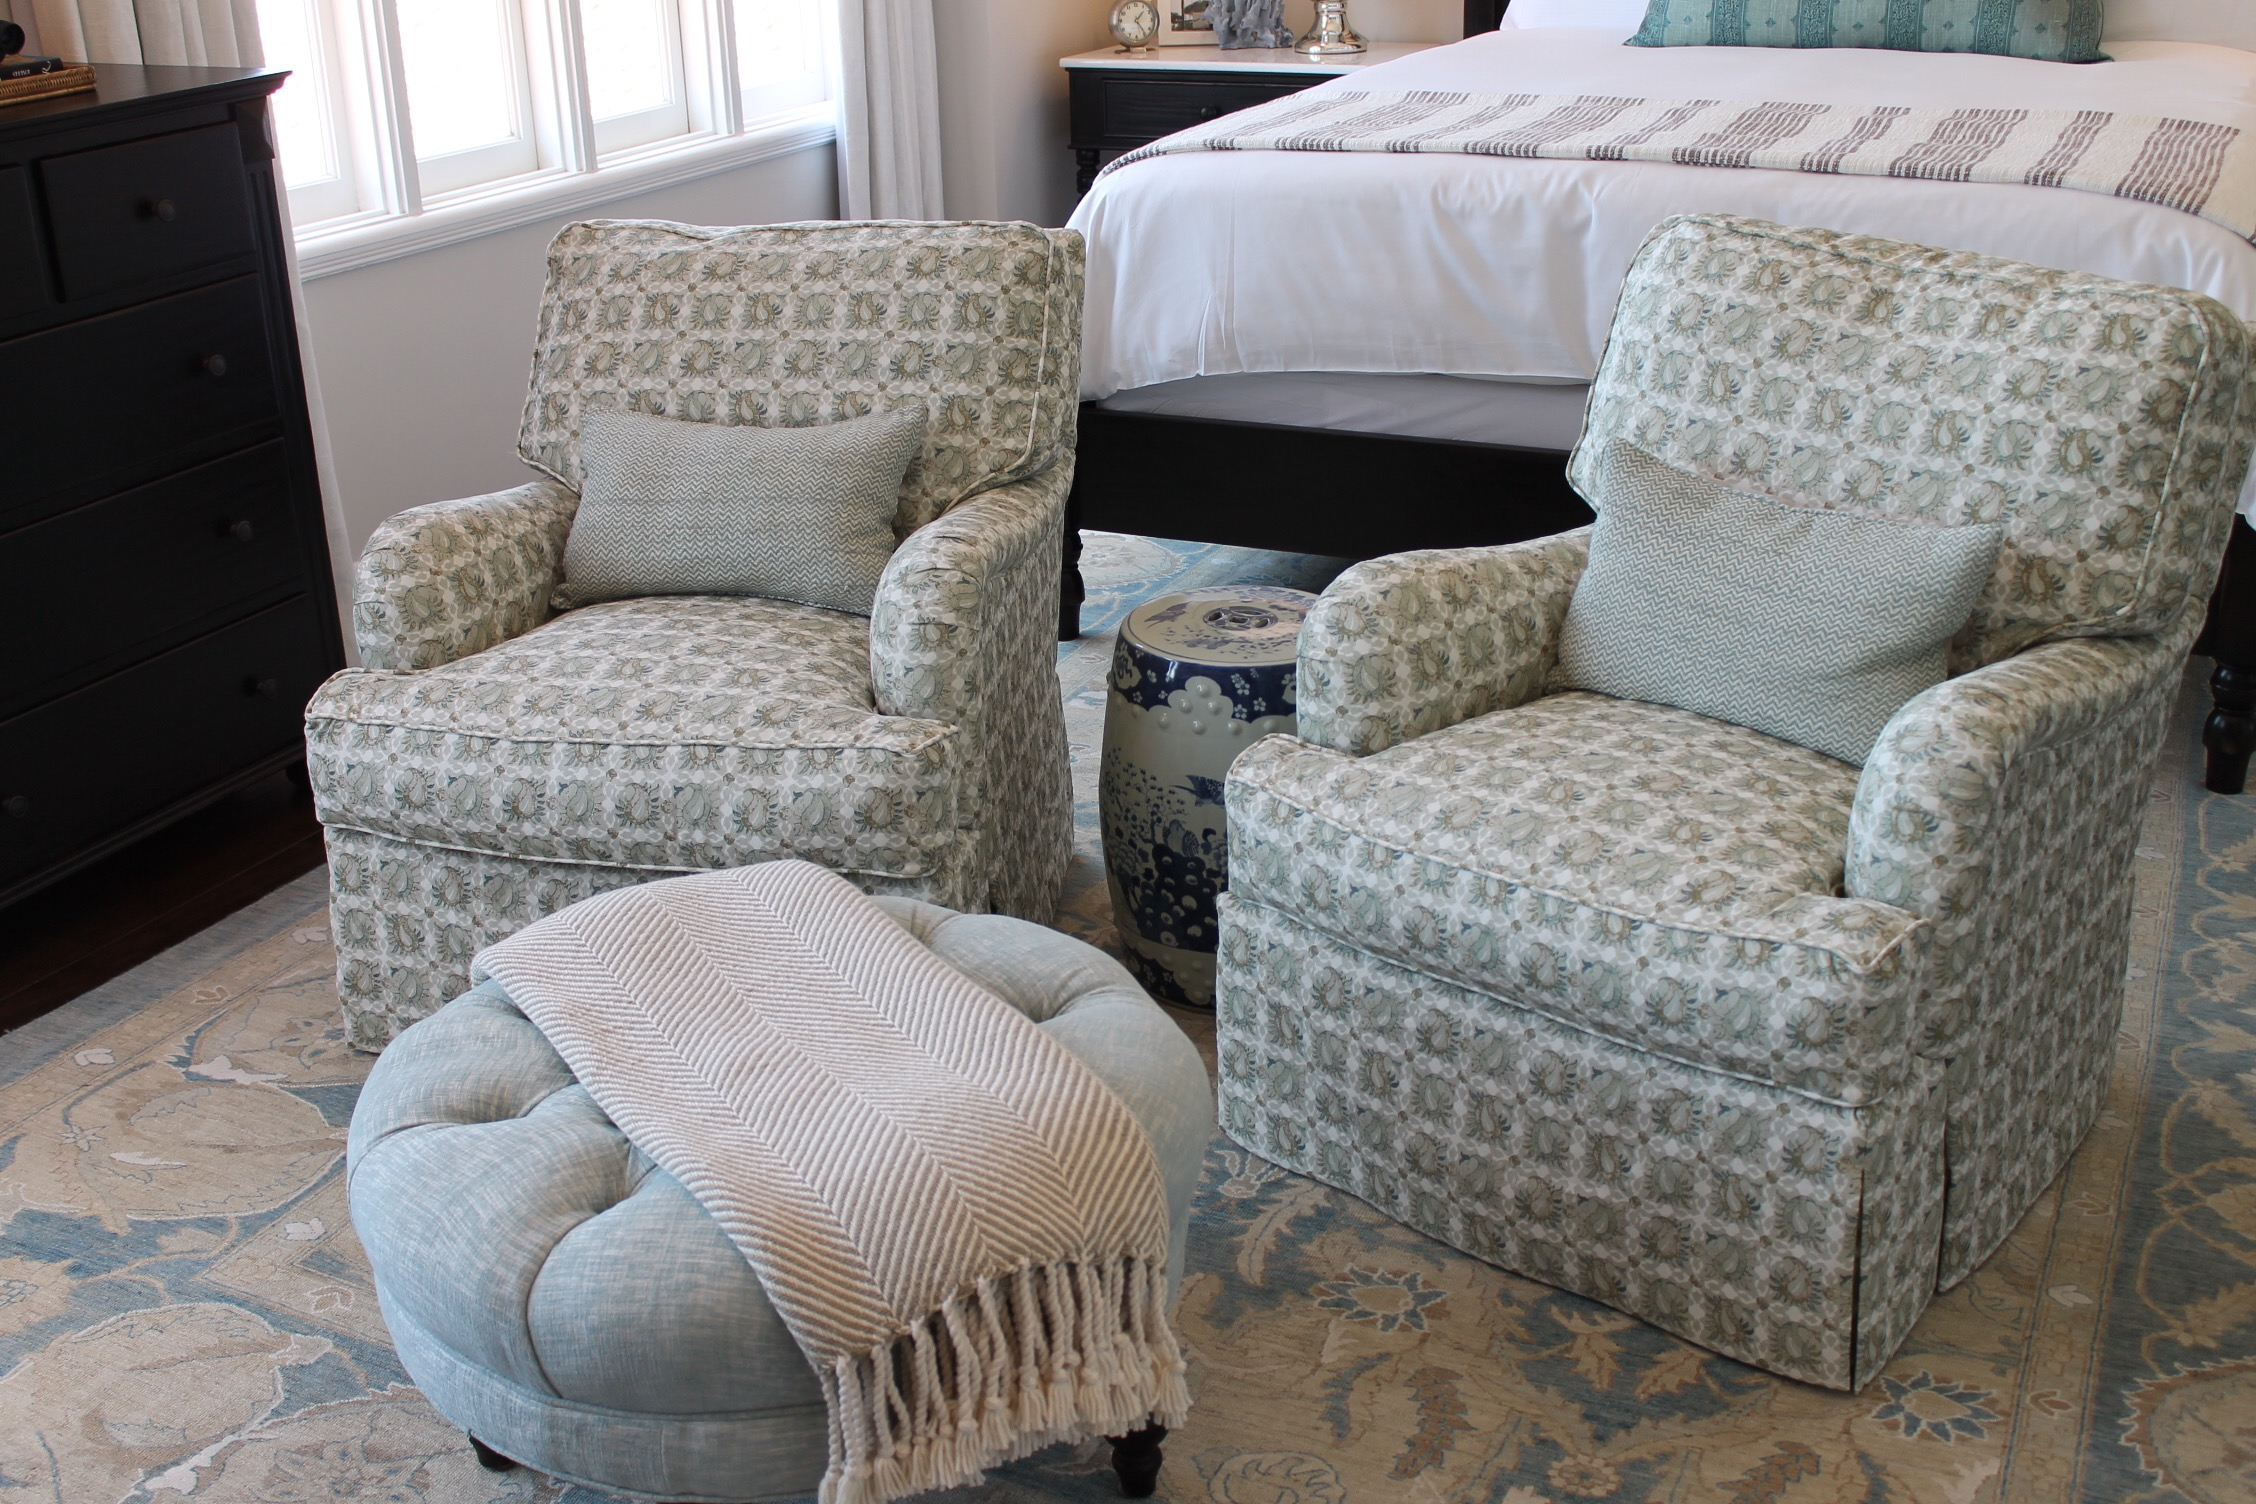 Bedroom featuring the Cambridge Chair from Rooms and Gardens